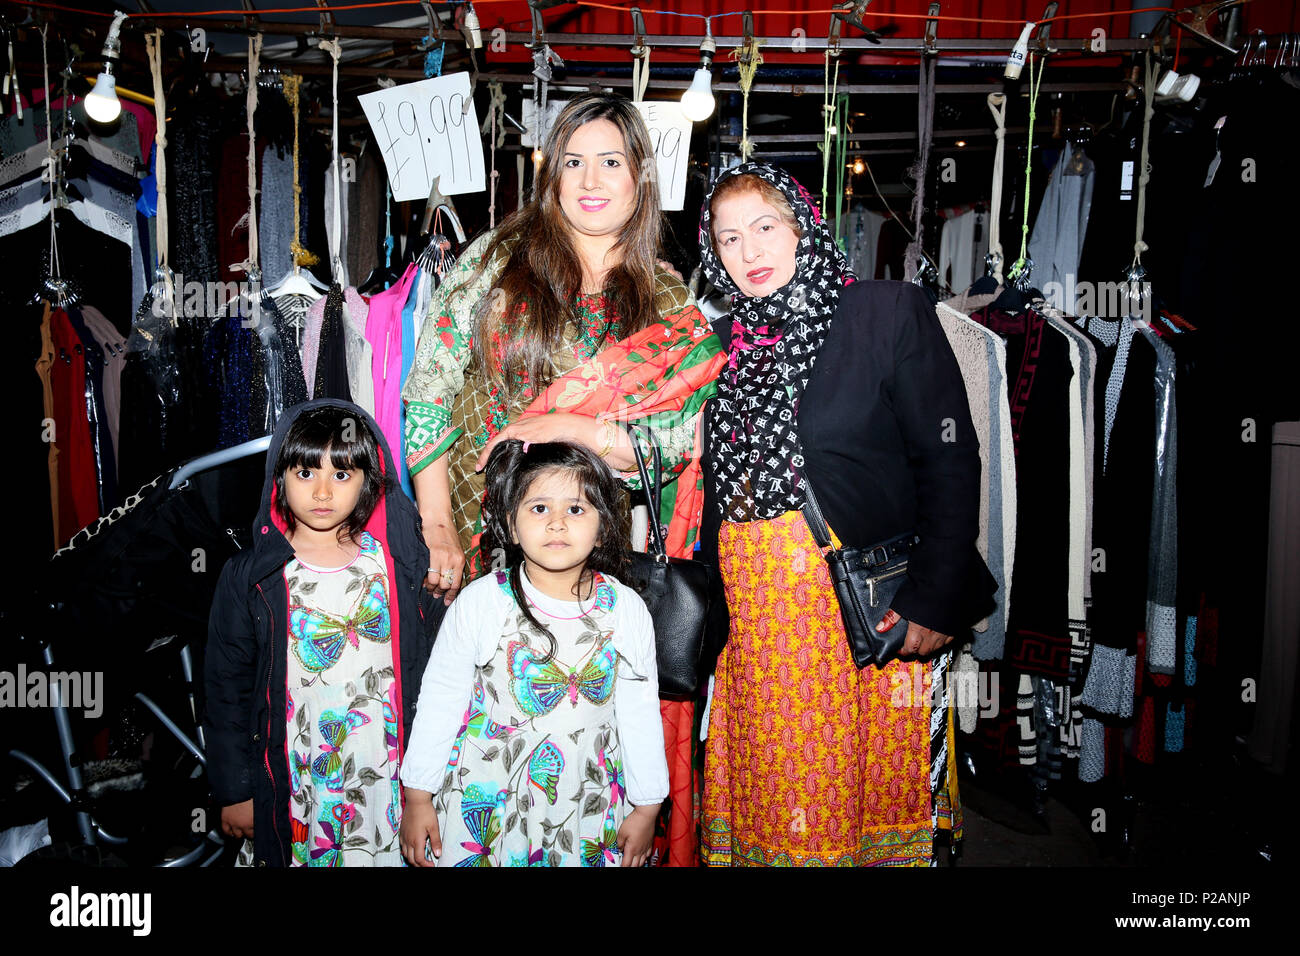 Manchester, UK. 14th June 2018. Muslim families celebrate Chaand Raat, which translated literally means night of the moon.  The festival marks the end of Ramadam and the night before Eid. Longsight Market, Manchester, 14th June, 2018 (C)Barbara Cook/Alamy Live News - Stock Image